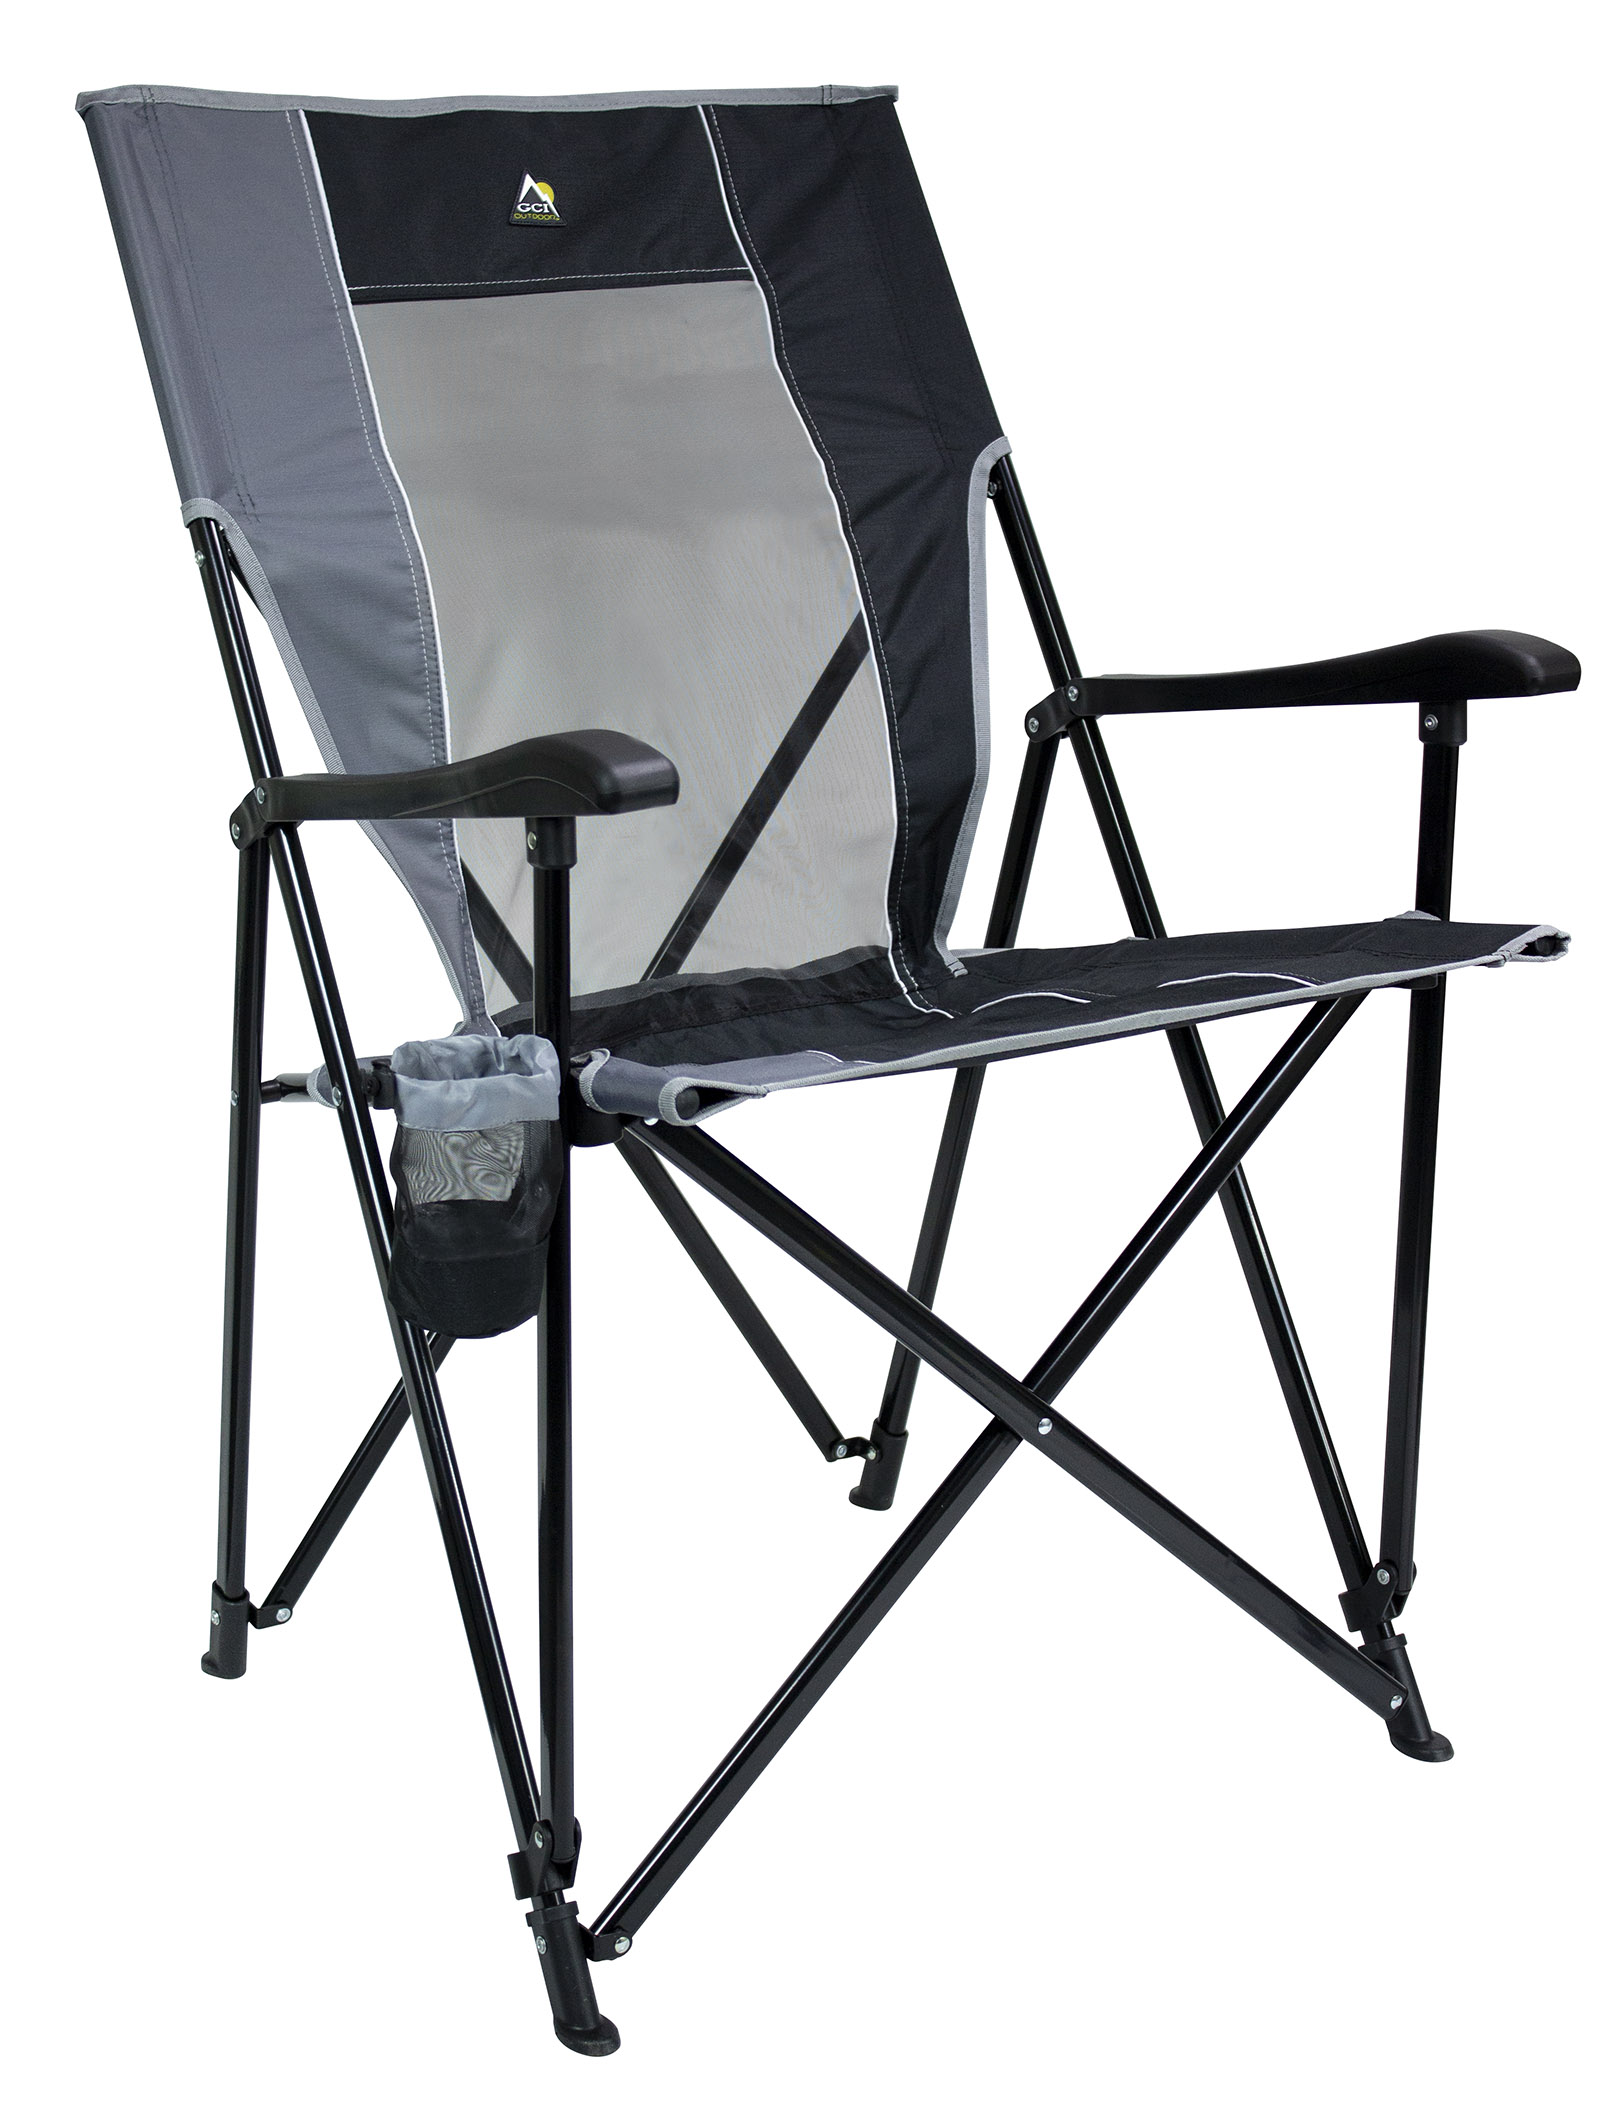 gci-outdoor-ez-chair-xl.jpg